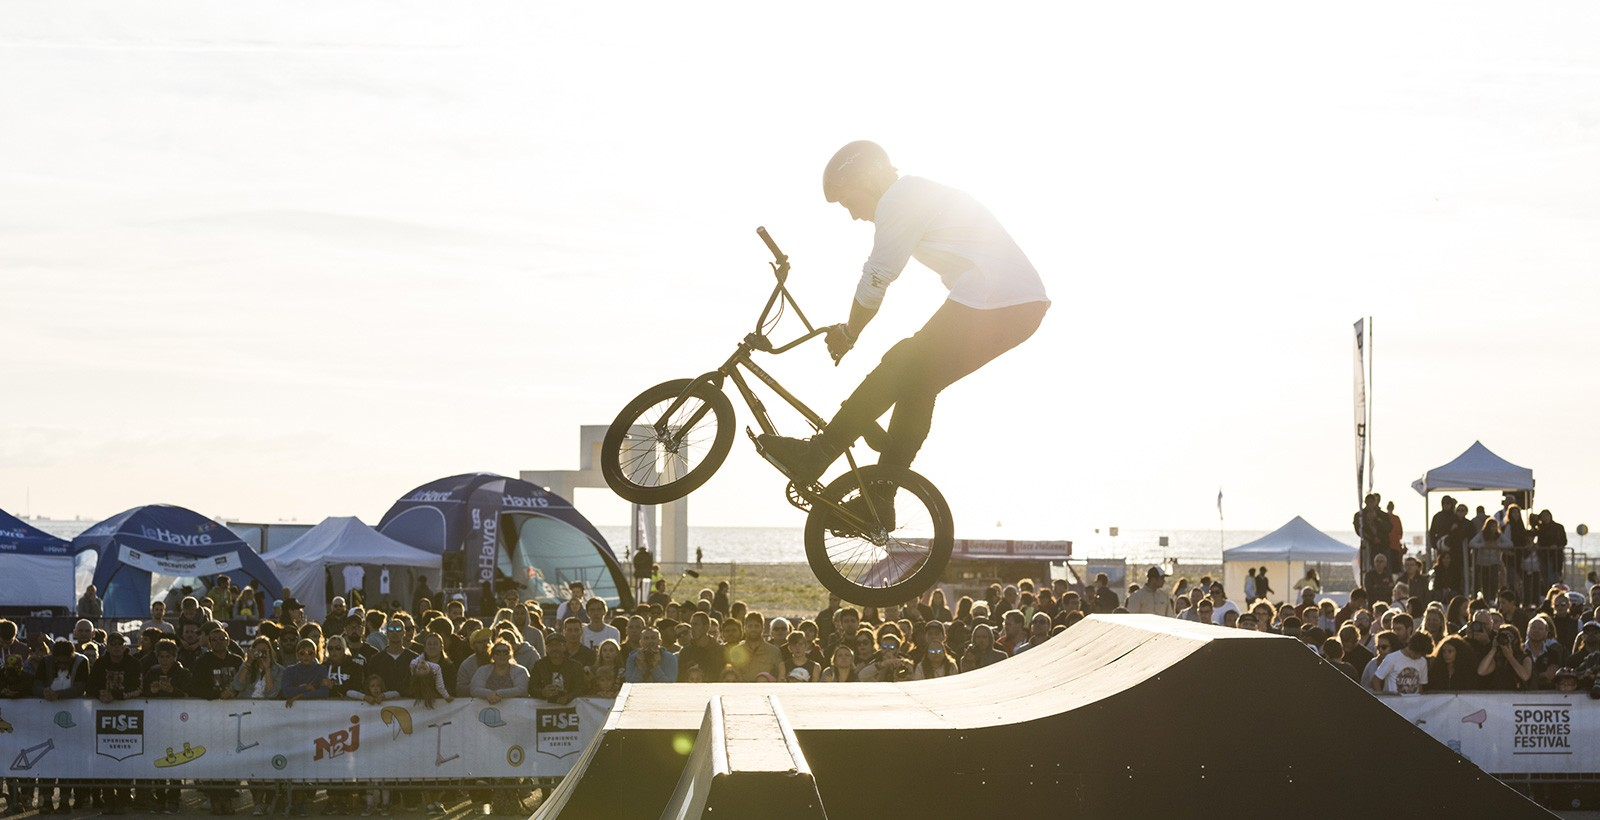 Home | FISE